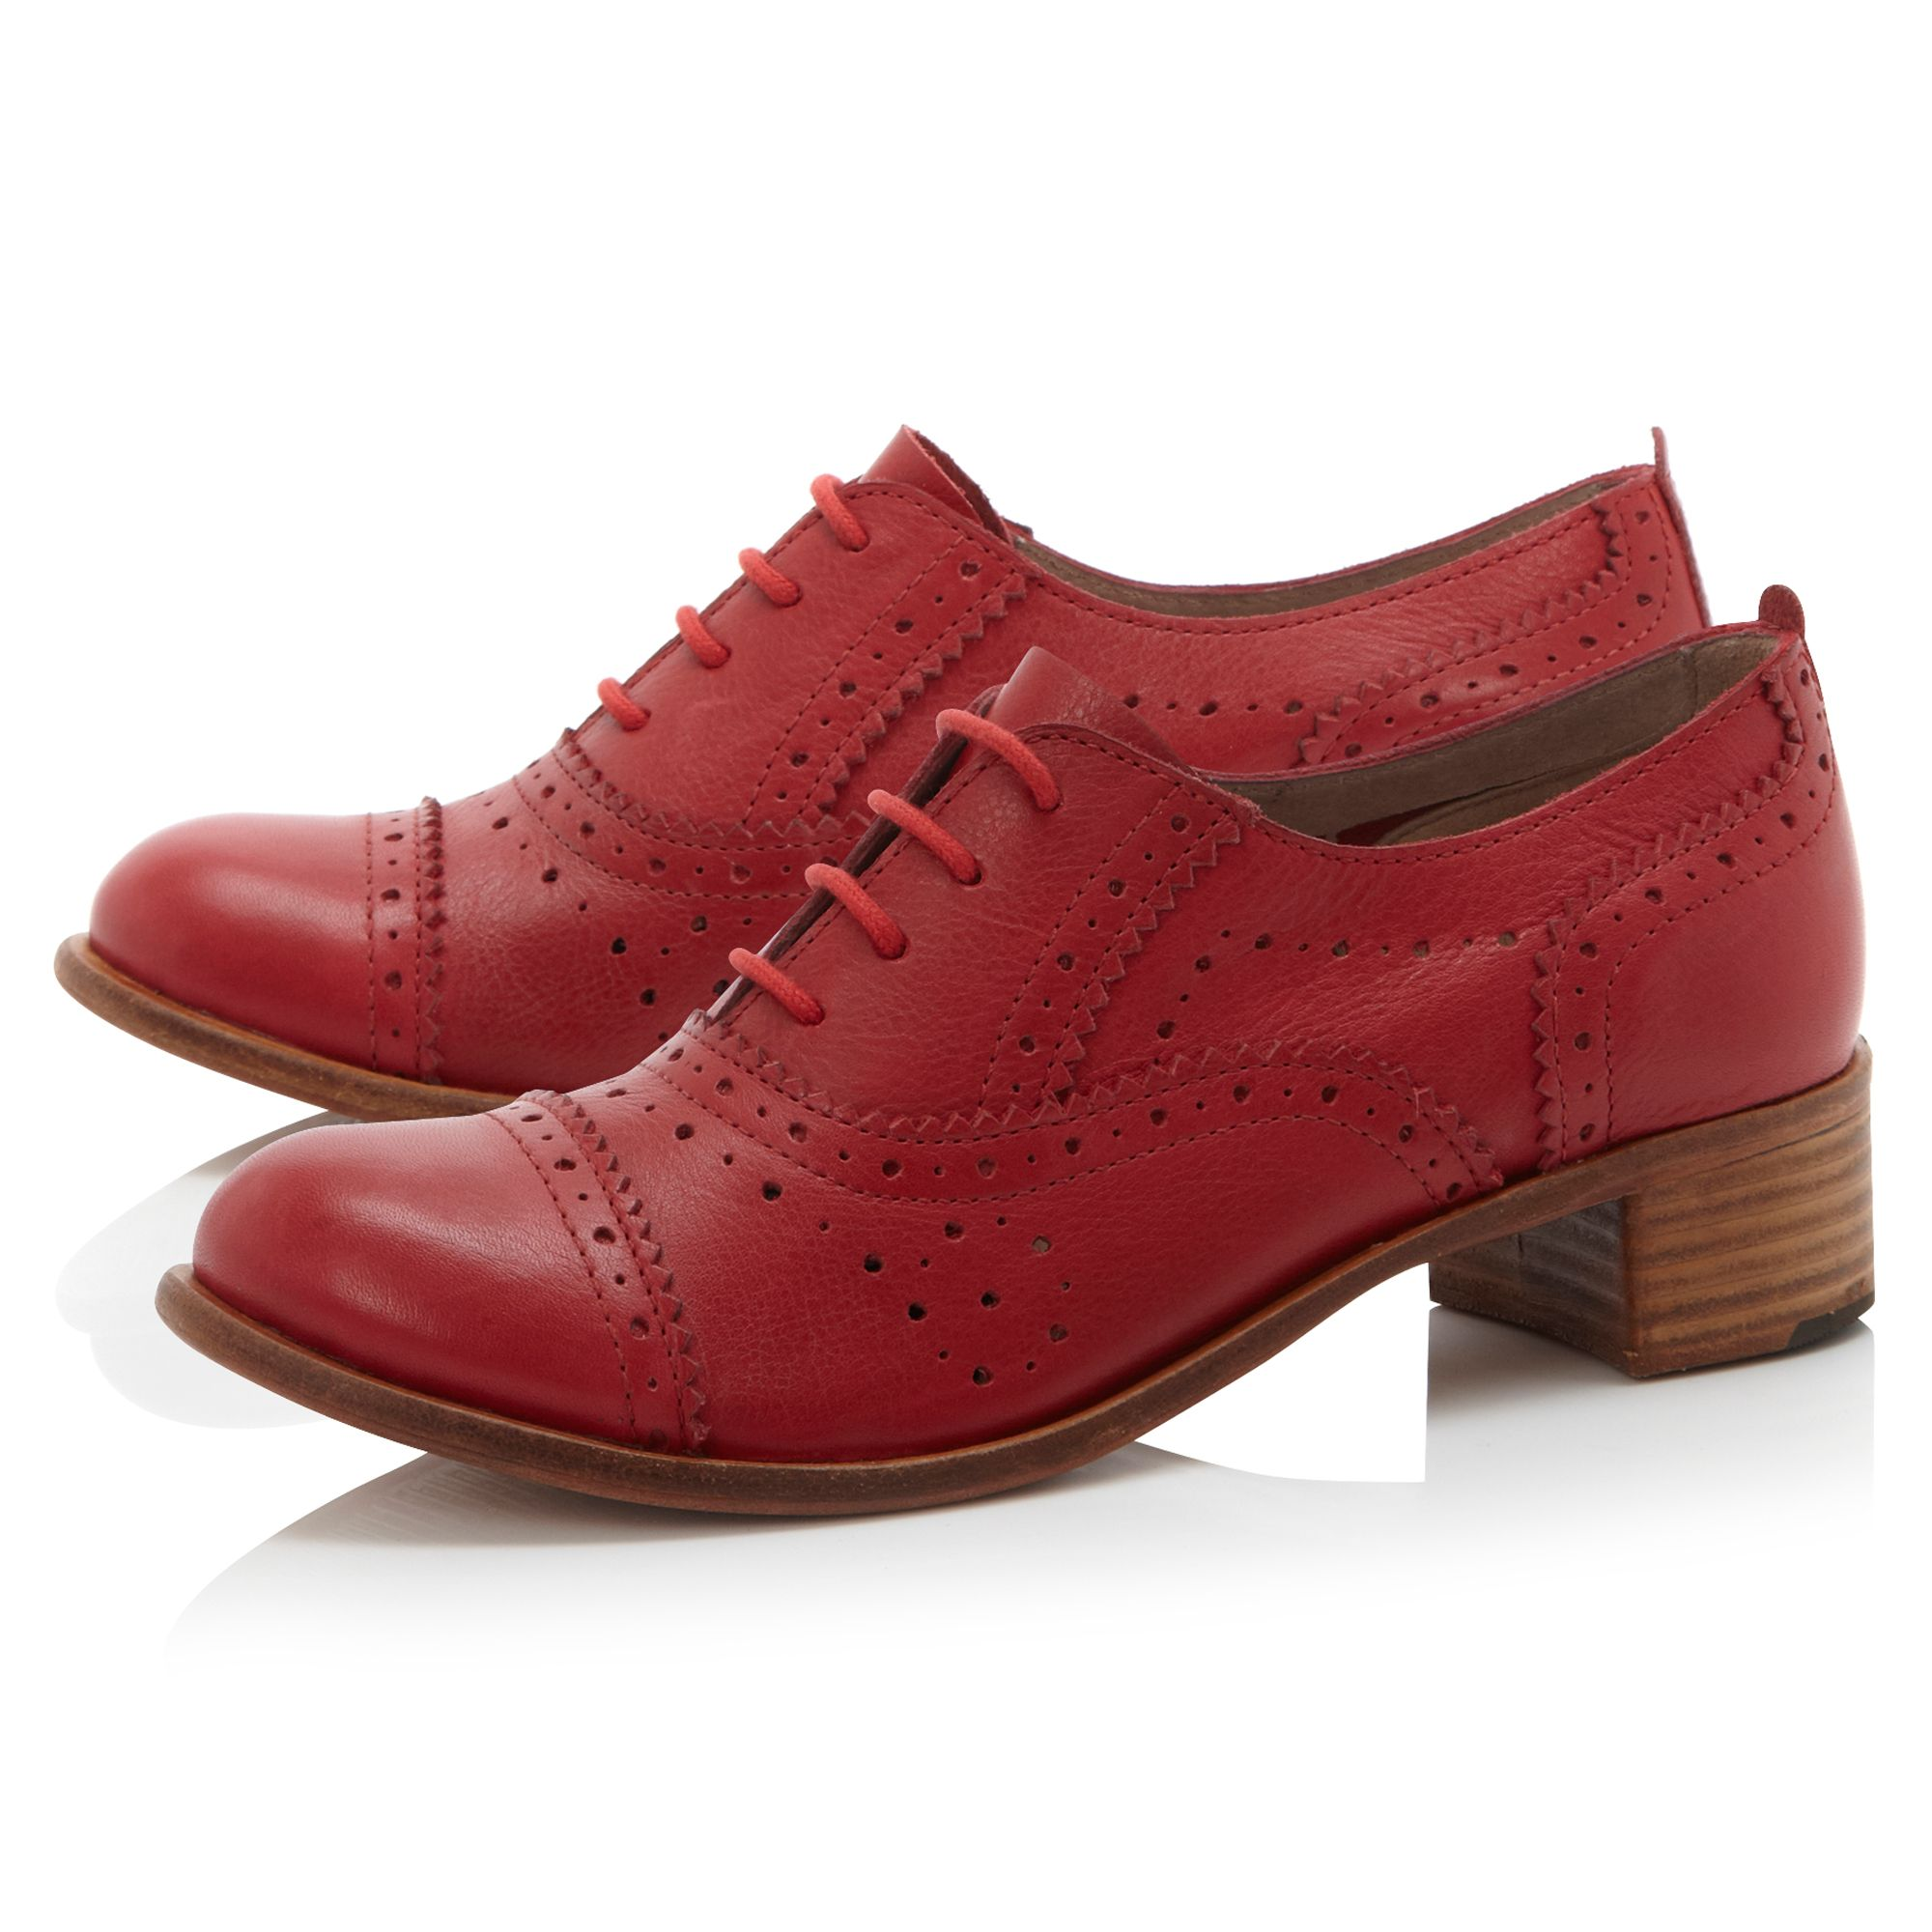 Branell heeled town lace up shoes